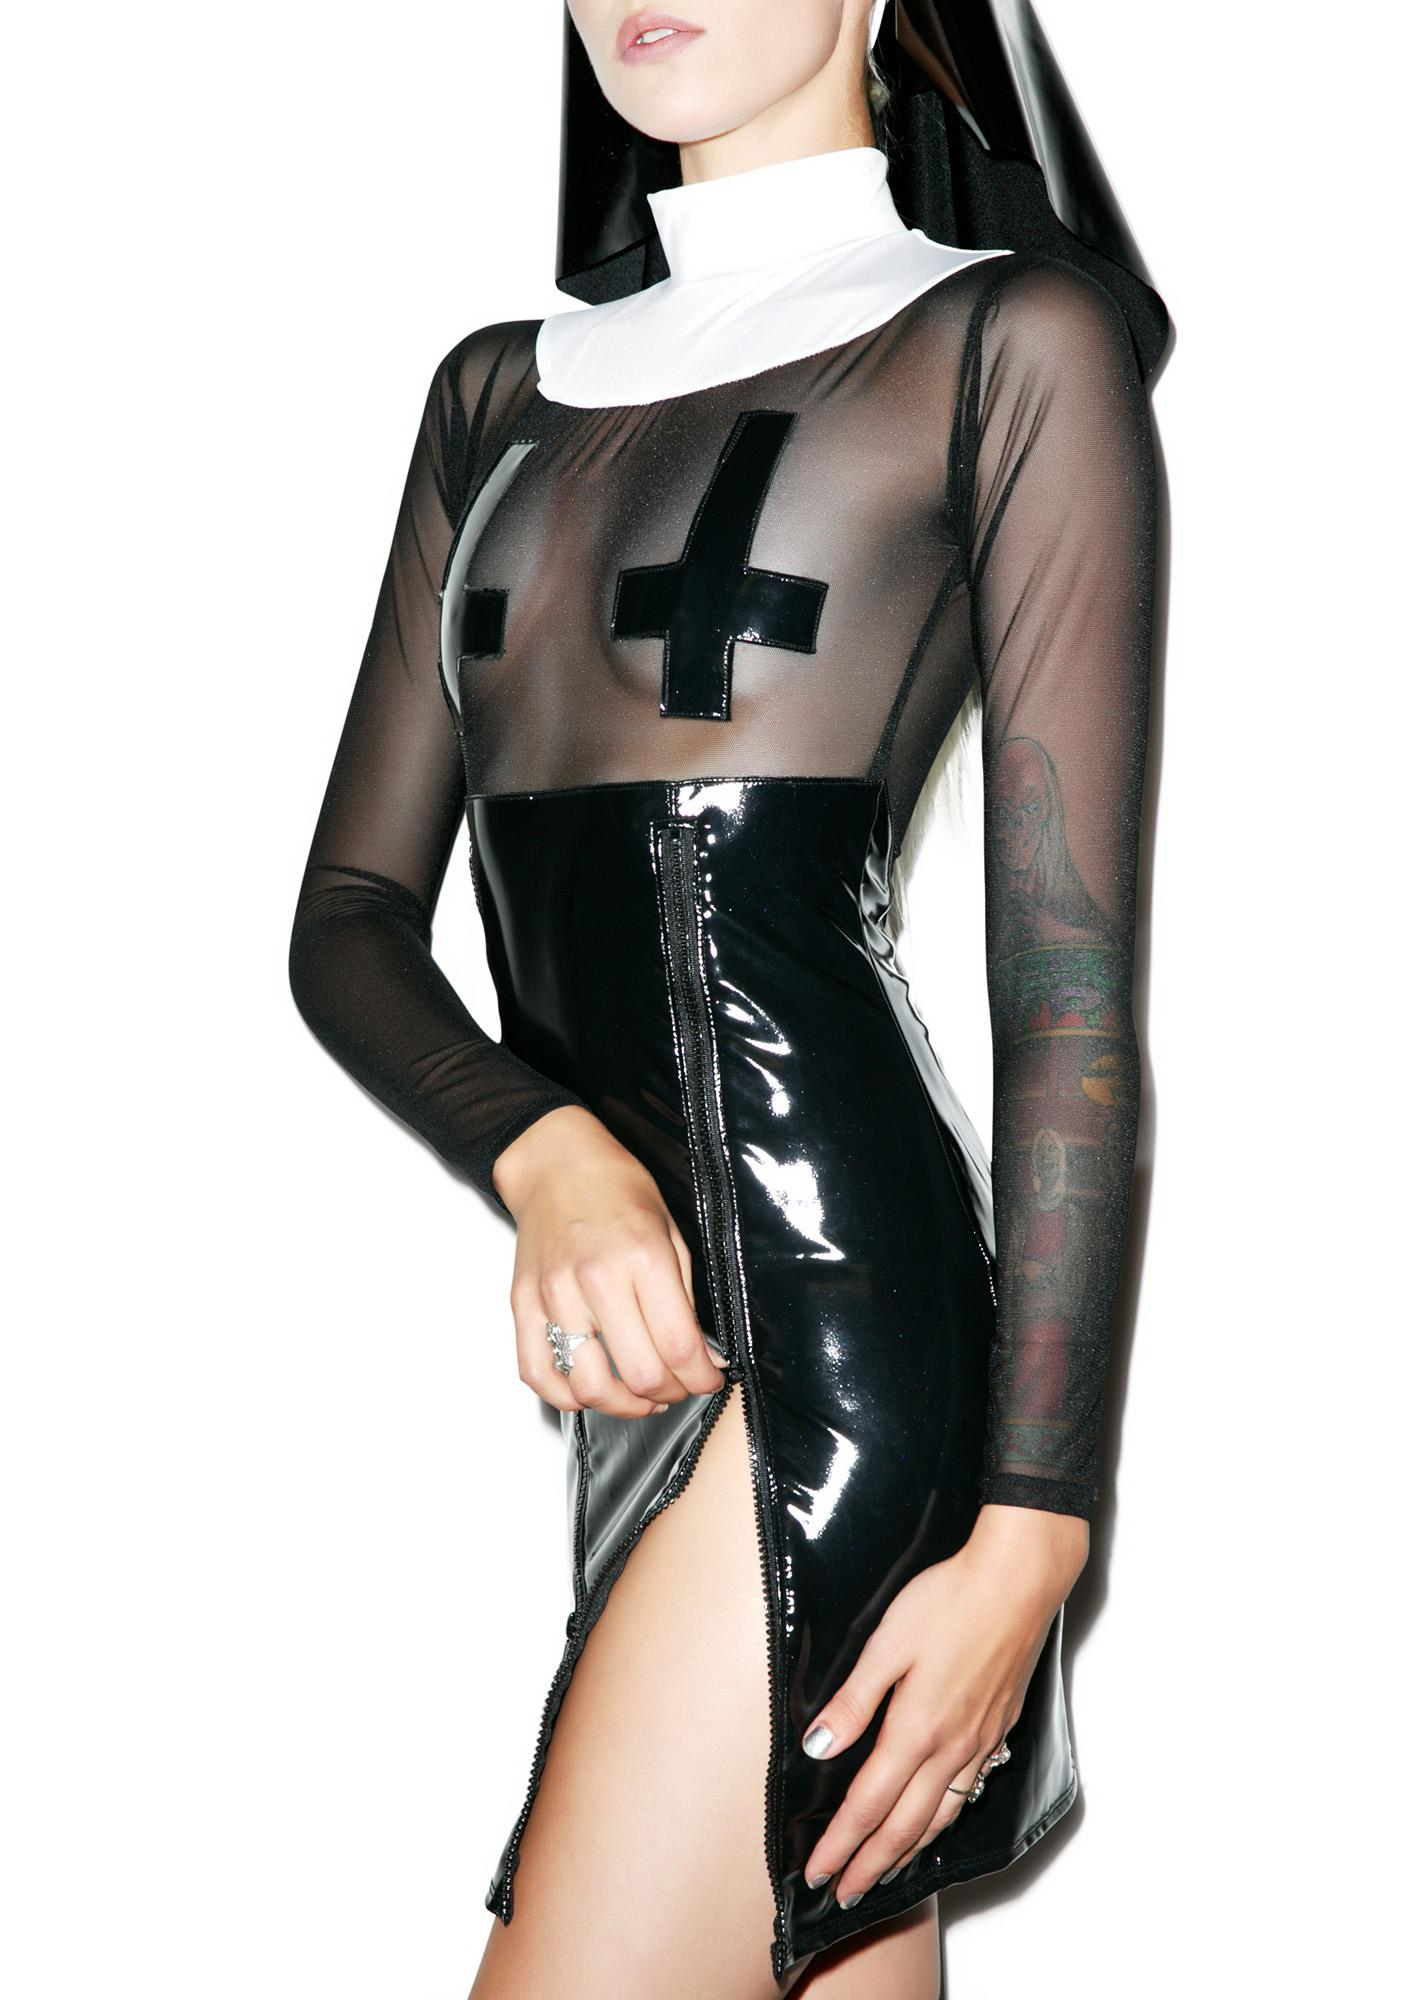 Nun More Black Costume